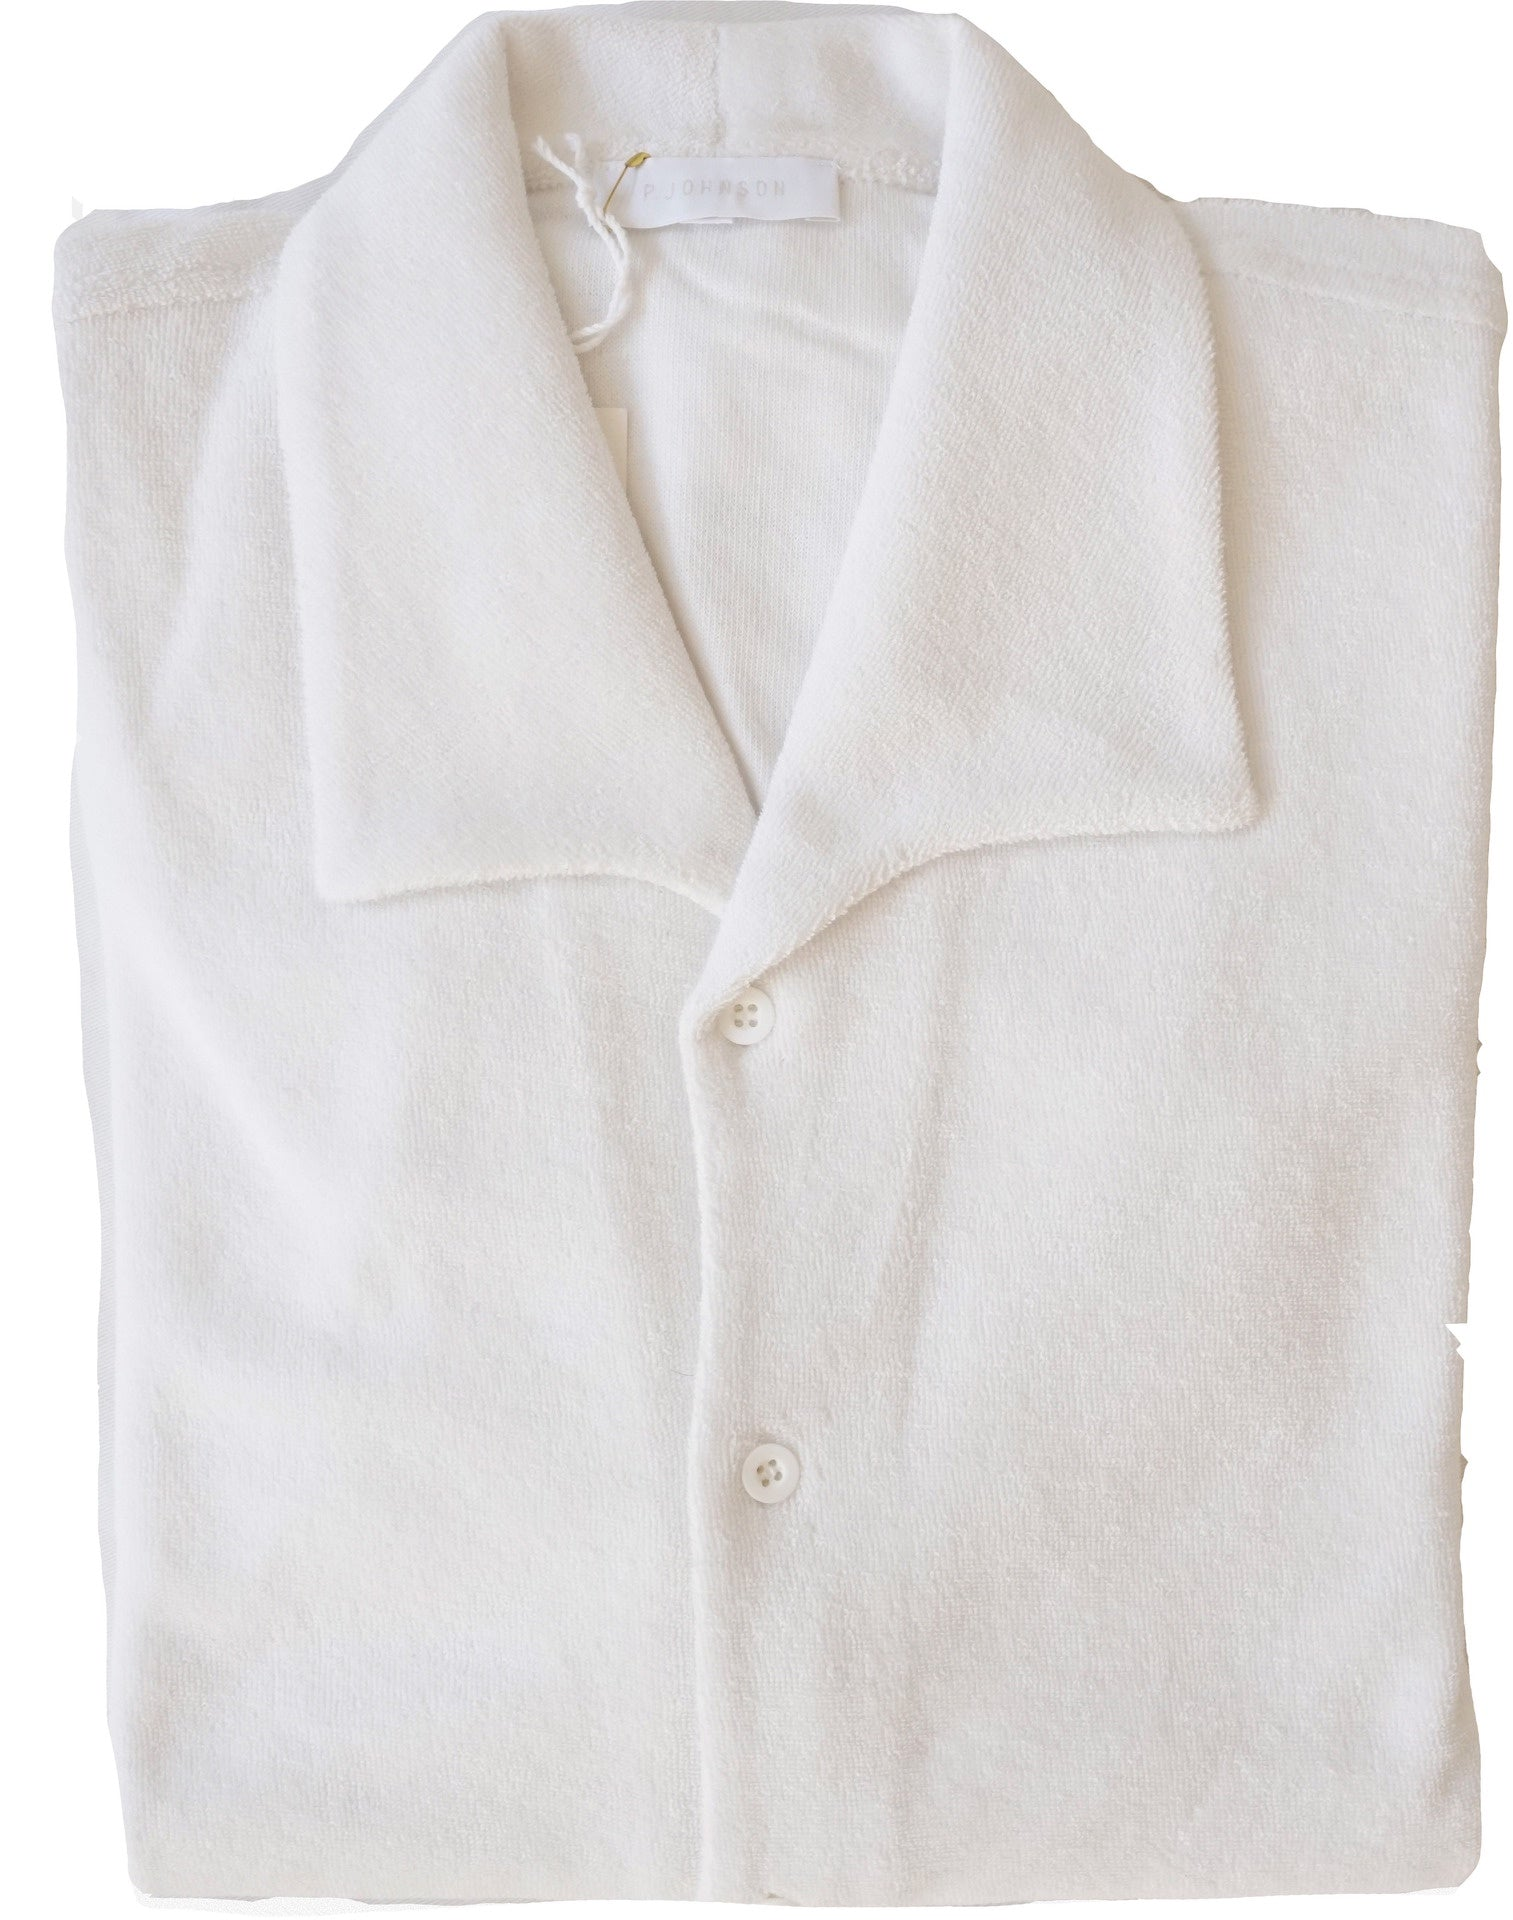 White Terry Towel One Piece Button Up Polo Shirt